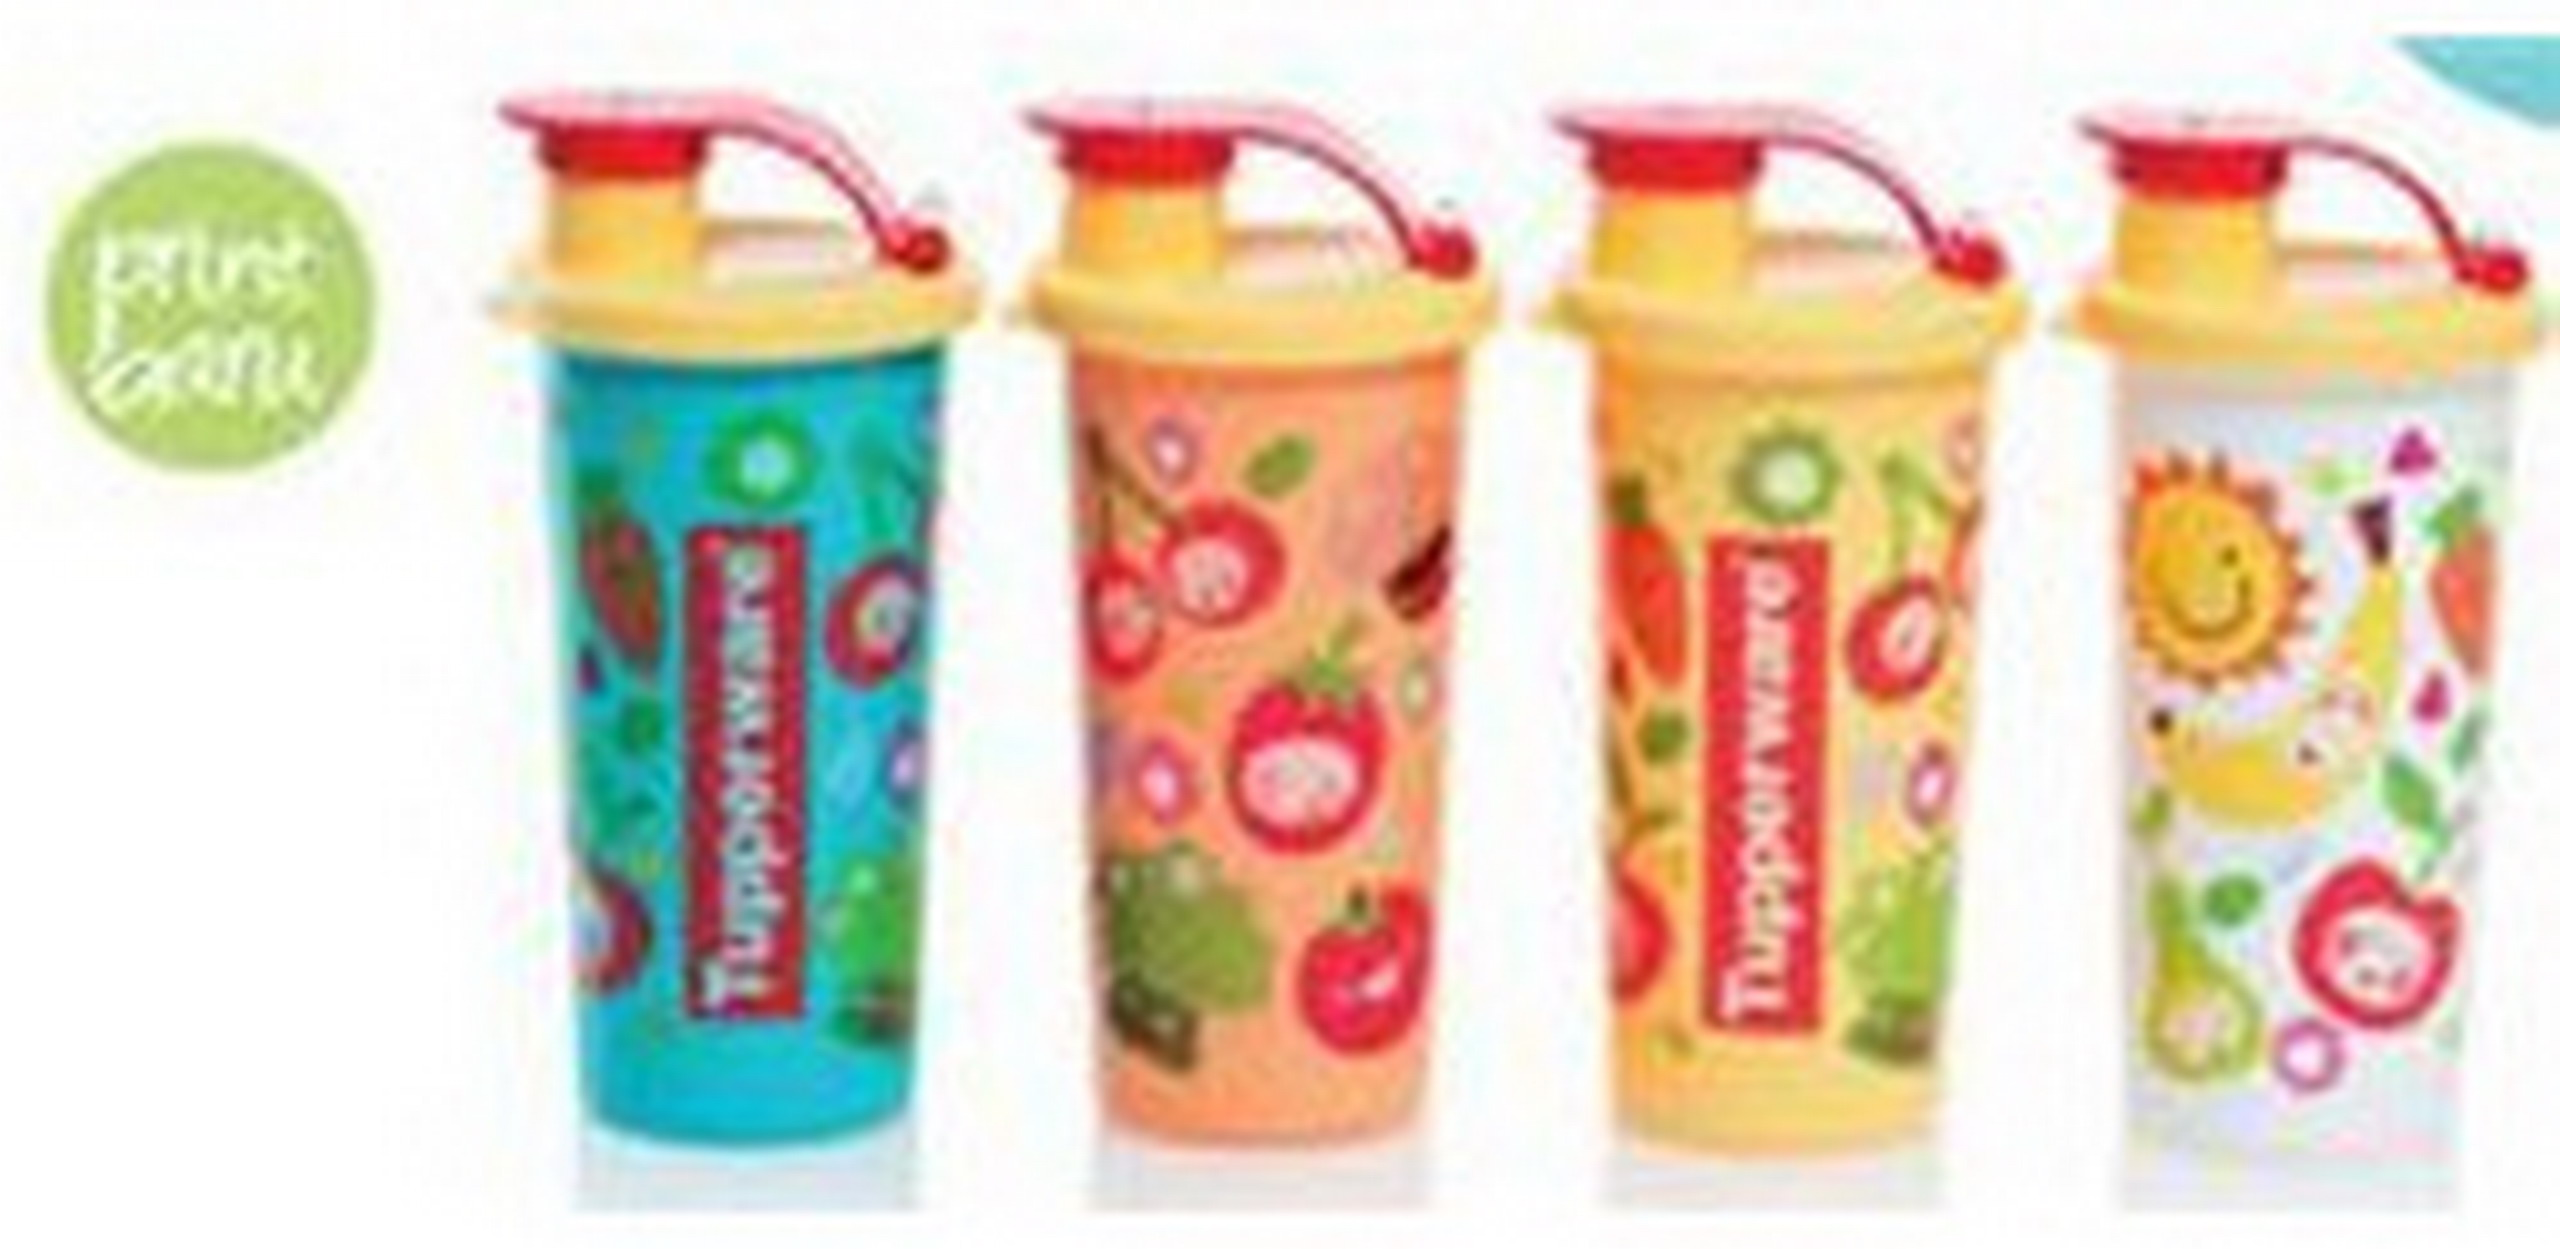 http://freetupperware.files.wordpress.com/2013/08/tupperware-indonesia-fun-tumbler-fruity1.jpg